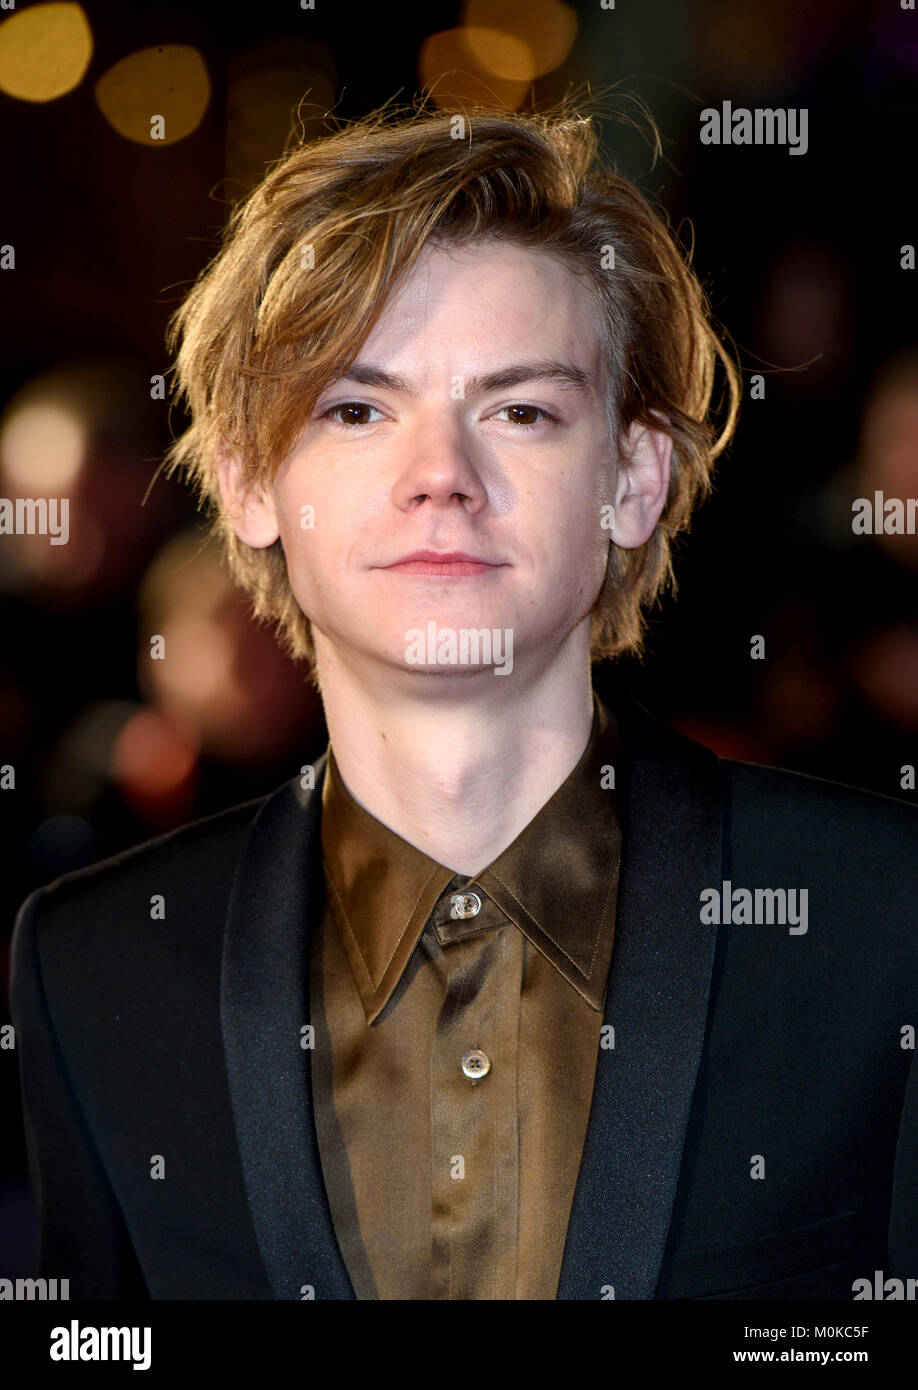 thomas brodie sangster stock photos  u0026 thomas brodie